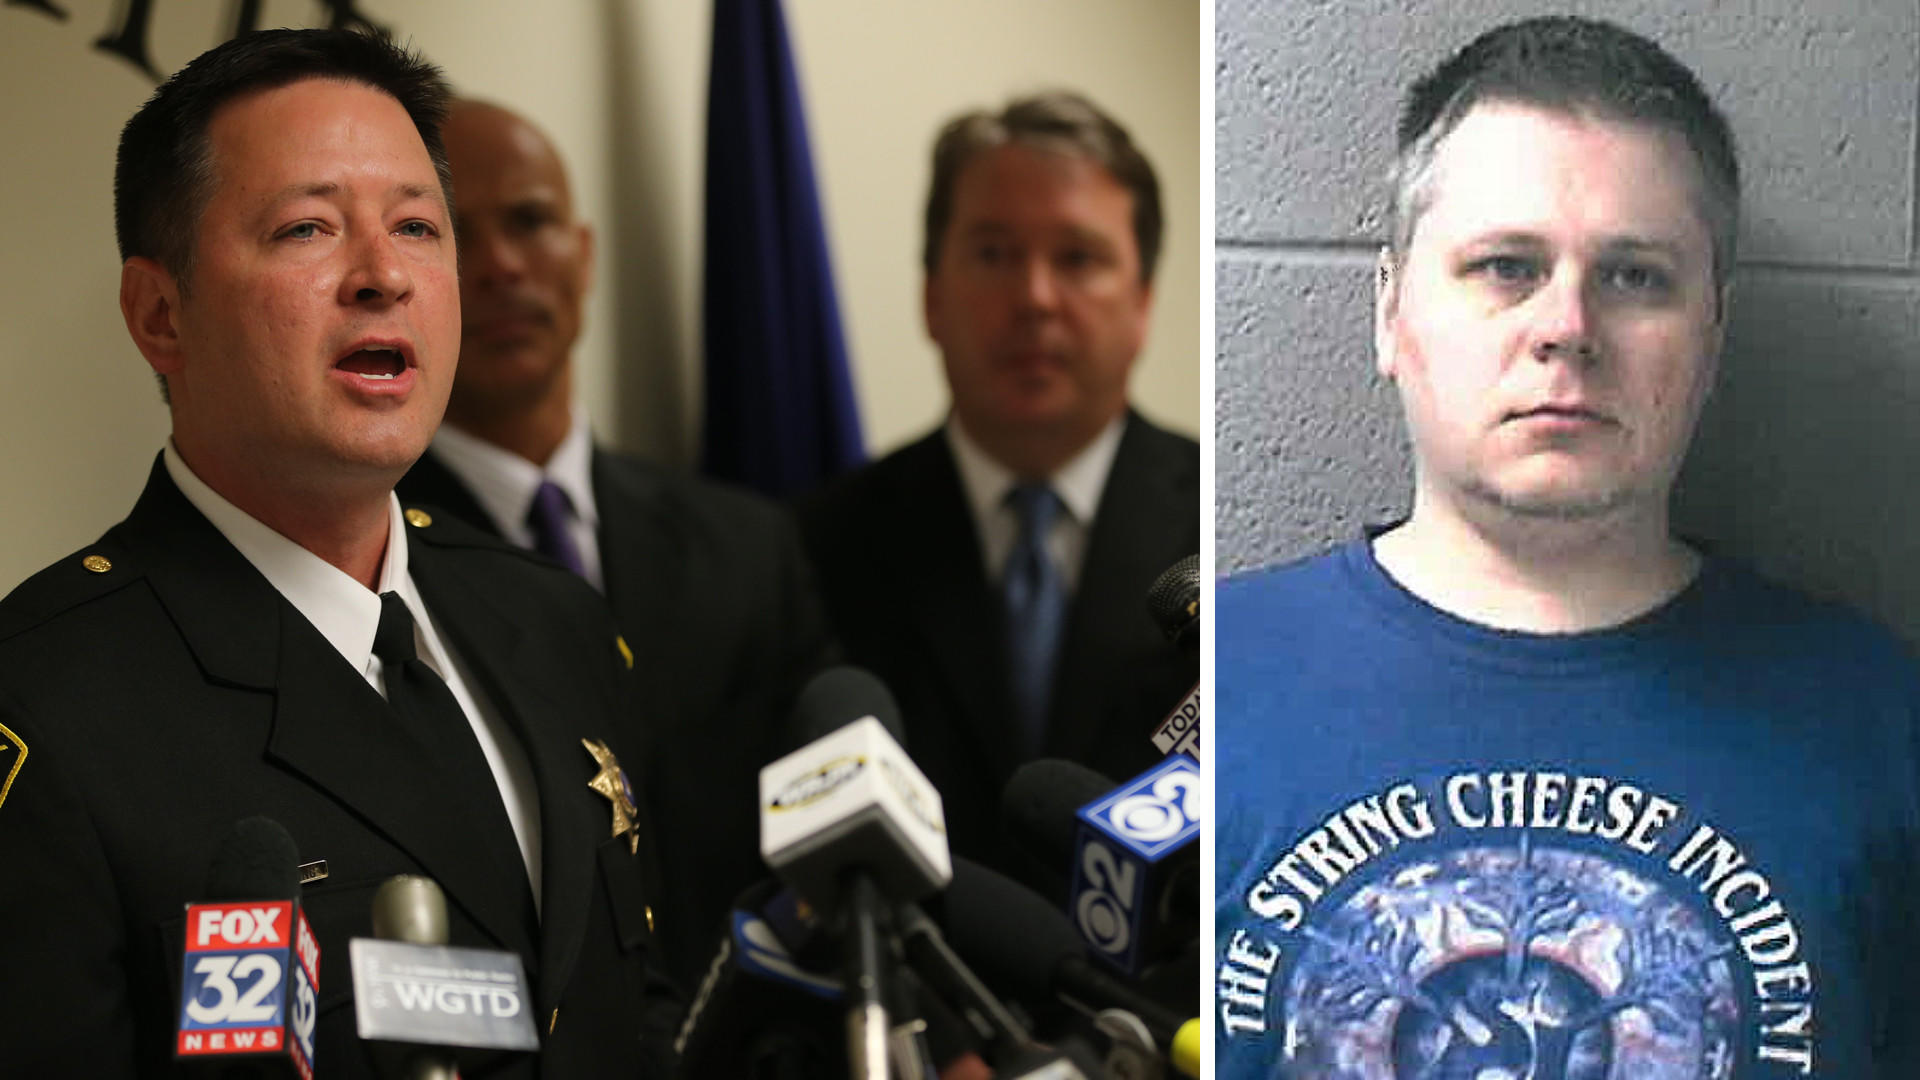 Racine County Sheriff Christopher Schmaling, left, announces the arrest of James Eaton, right, in the 1997 slaying of Amber Creek, 14, of Palatine.